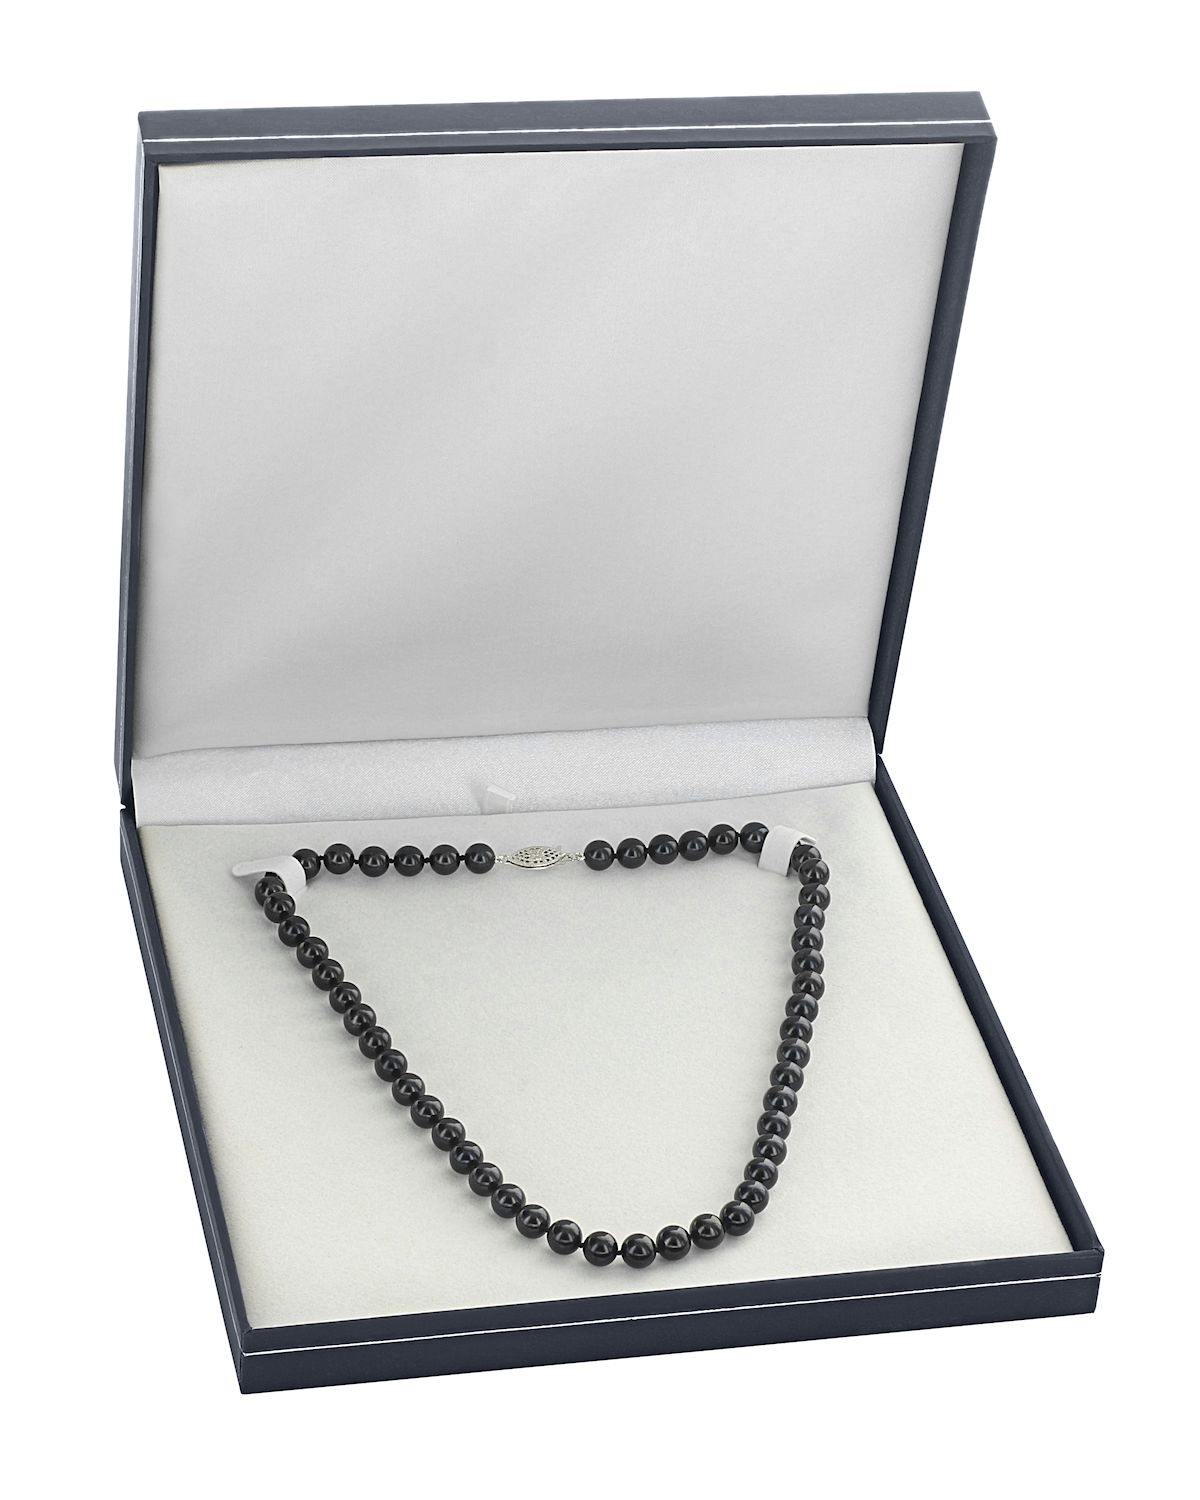 5.0-5.5mm Japanese Akoya Black Choker Length Pearl Necklace- AA+ Quality - Secondary Image